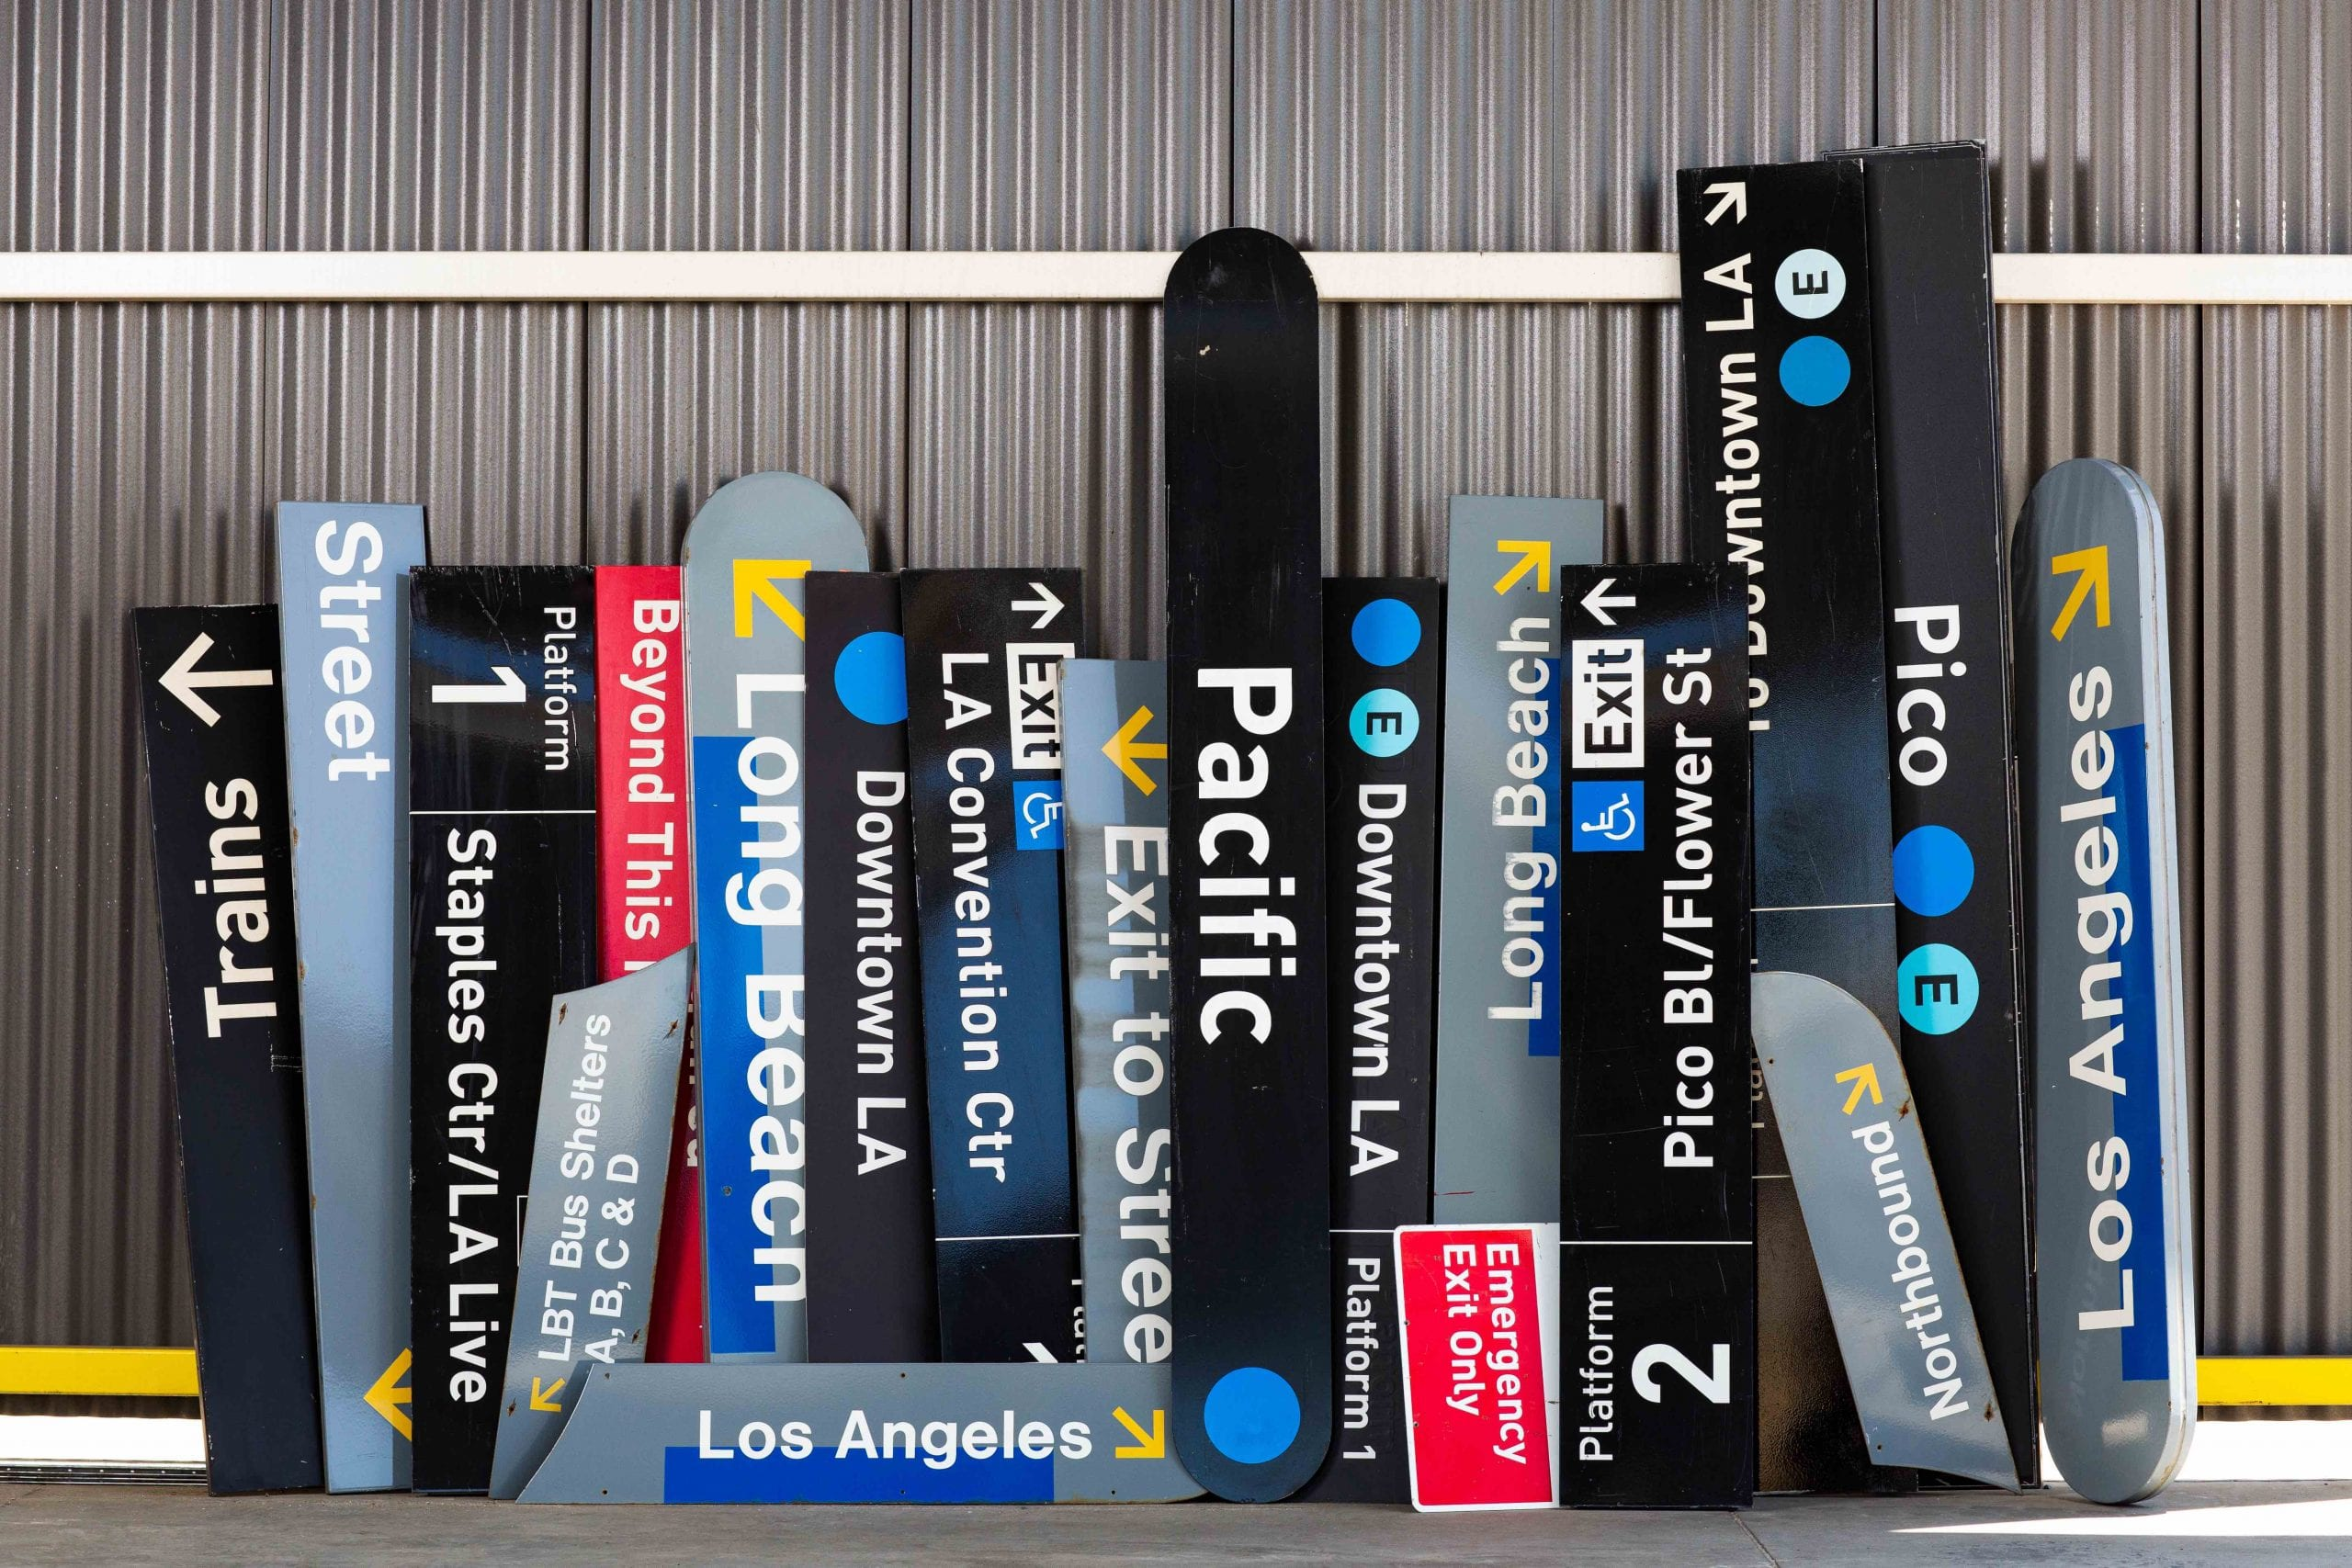 Blue Line Vintage Sign Auction On Thursday Oct 24 At Union Station The Source